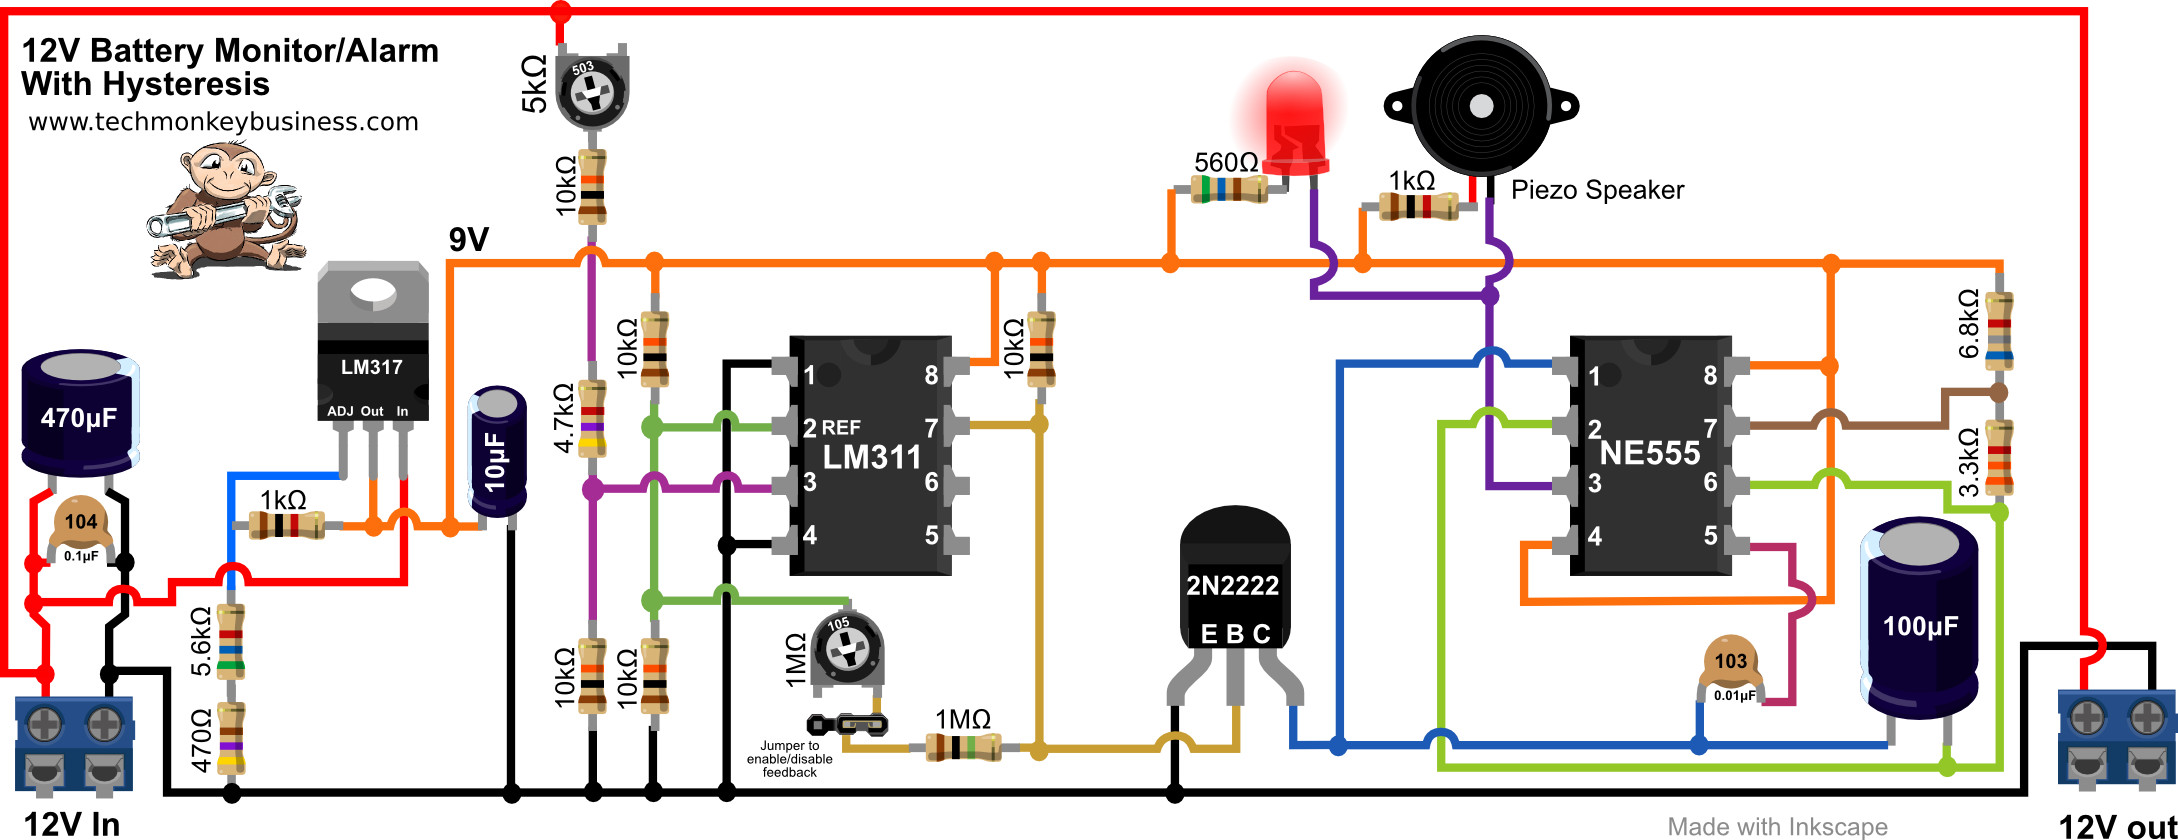 12v Battery Diagram 19 Wiring Images Diagrams Sealed Lead Acid Charger Circuit Of The Monitor With Feedback Included